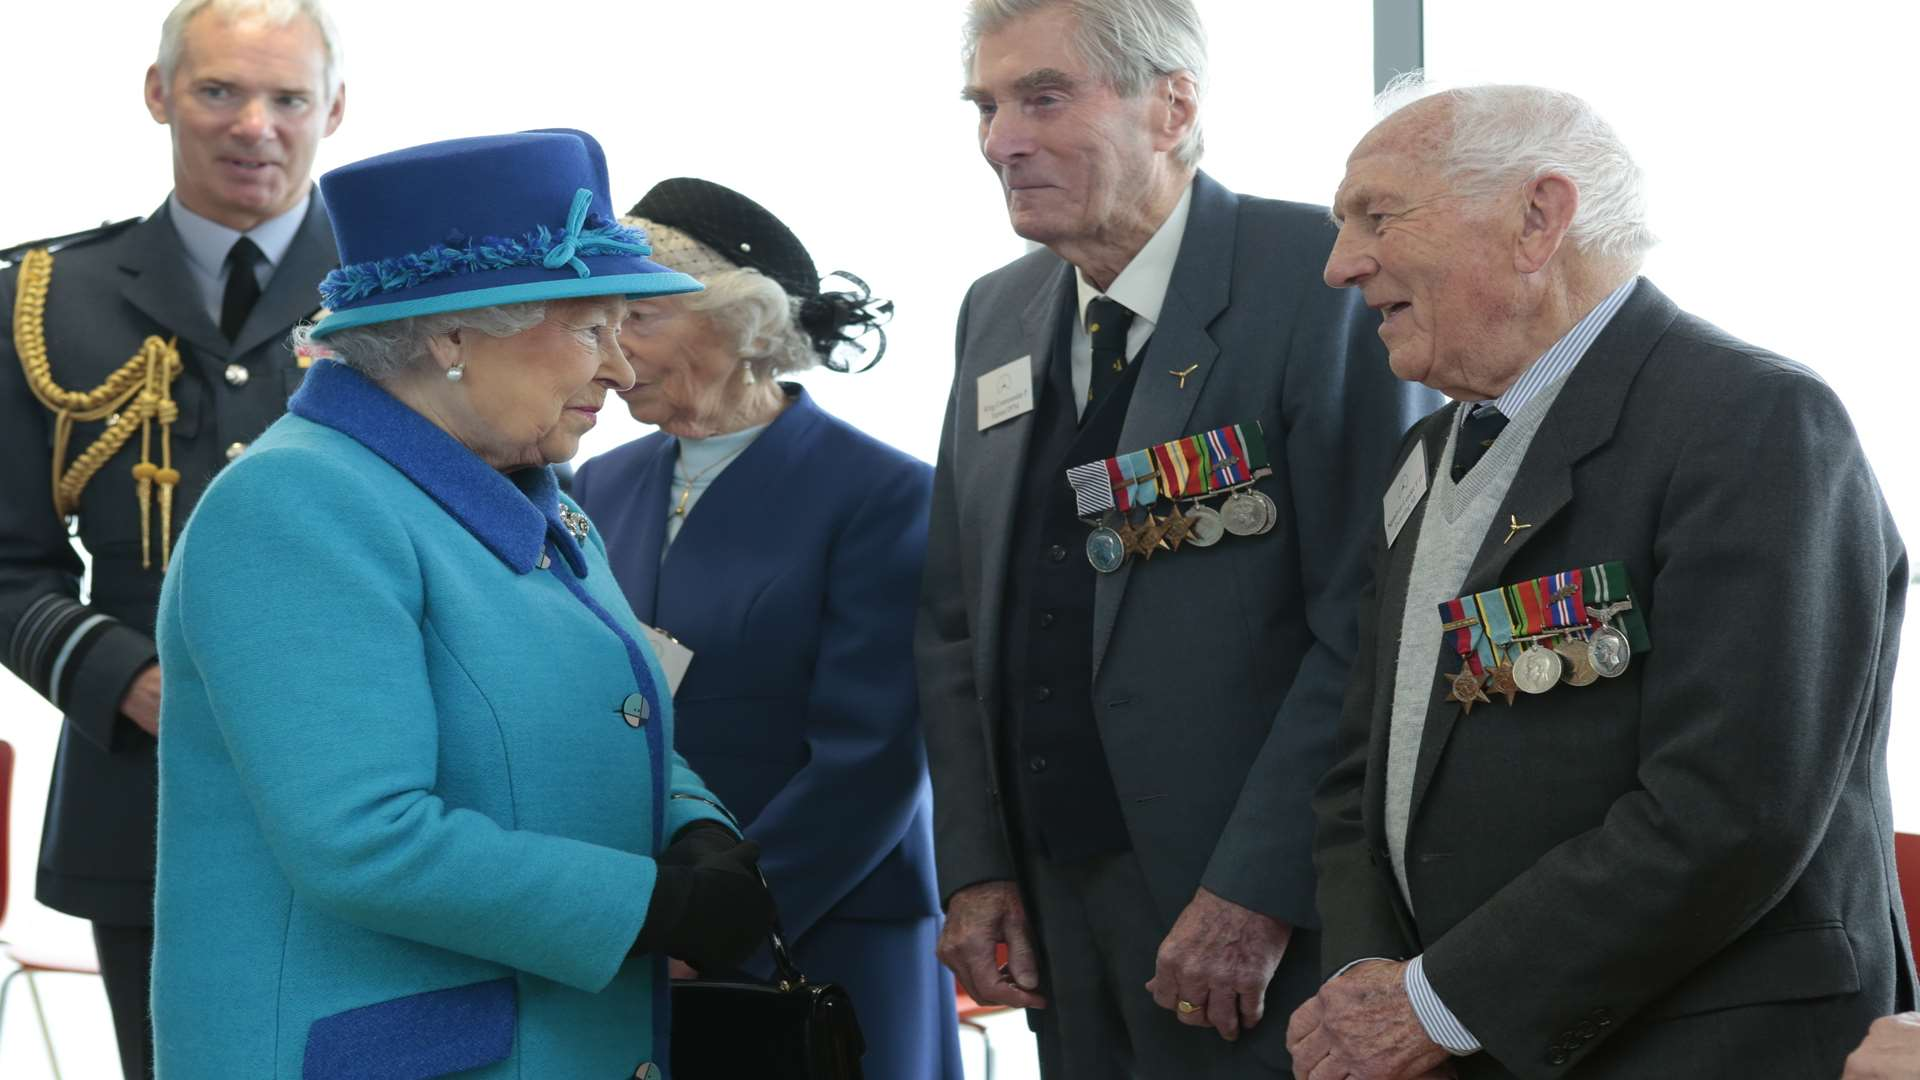 The Queen chats with Sqn Ldr Pickering during the opening of The Wing at Capel-le-Ferne last year. Picture: Martin Apps